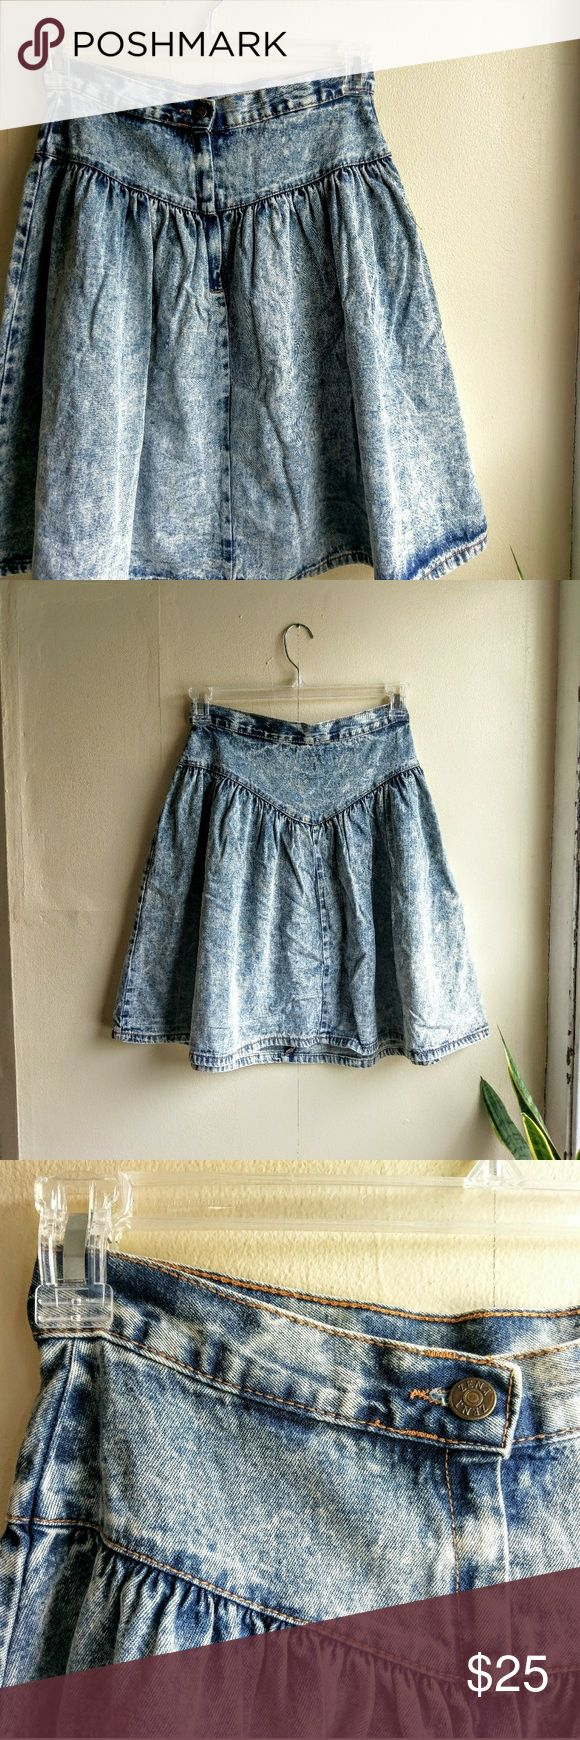 """Vintage 80's Zena High-Waisted Denim Skater Skirt Hello throwback! Super high-waisted, acid wash...what more could you ask for in this vintage denim skirt? Your fall wardrobe absolutely needs this piece.  Waist 28"""", Length 22""""  Made in the U.S.A   **styling photos from Pinterest - I do not own these!** Vintage Skirts Circle & Skater"""